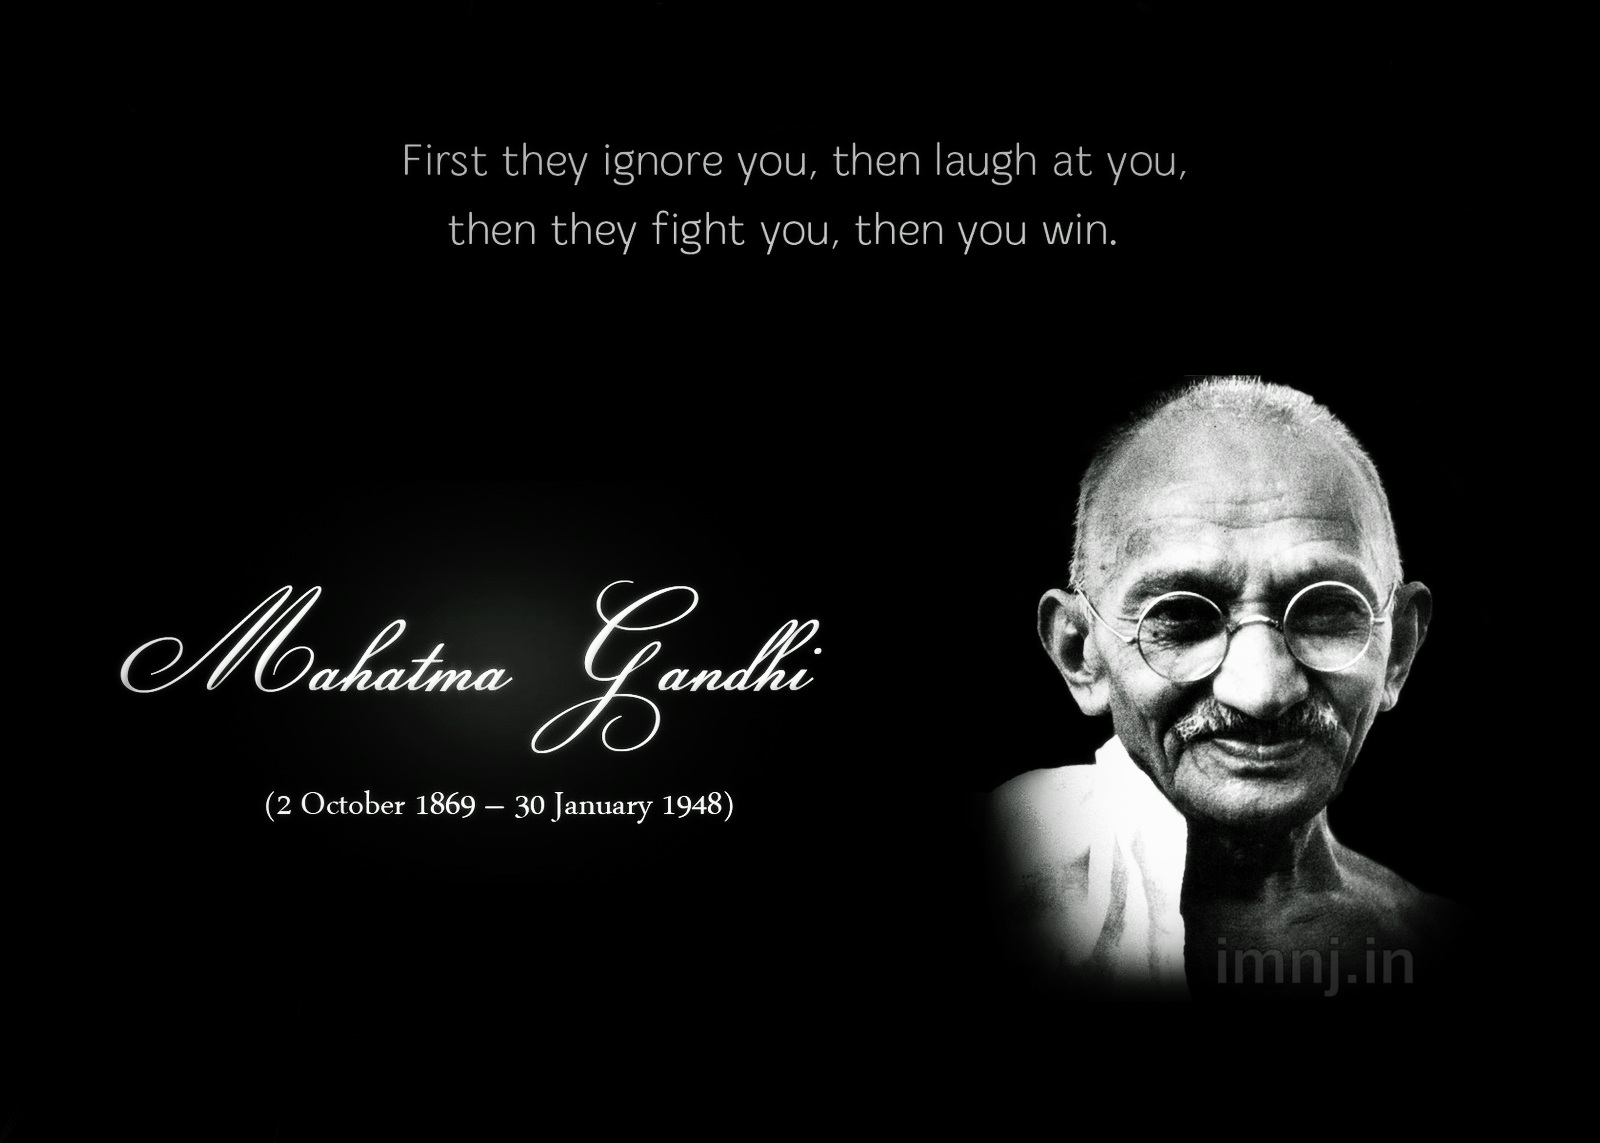 Quotes By Famous People